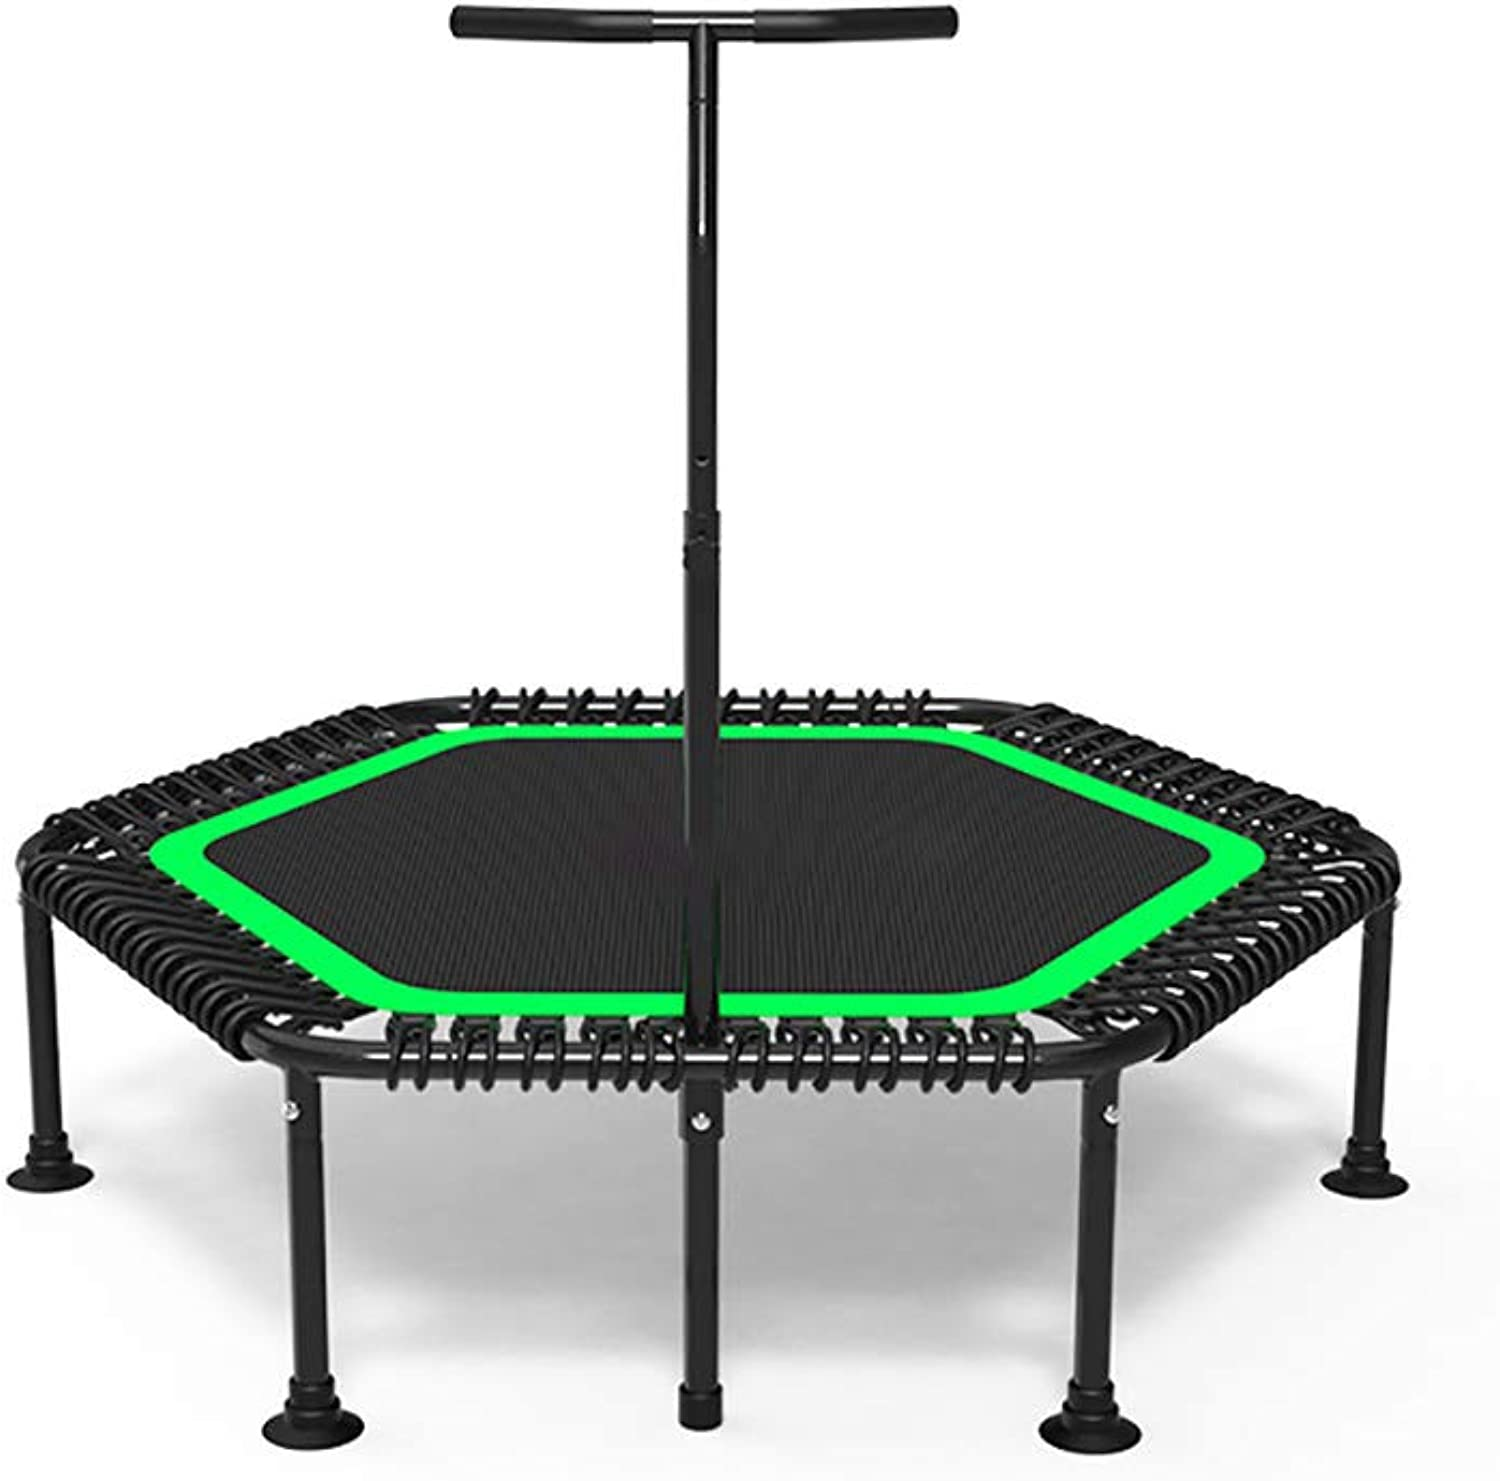 Folding Indoor Trampoline, Portable Exercise Trampoline  with Adjustable Handrail and Safety Pad for Kids Adults, Covered Bungee Rope System – Max Limit 330 lbs 50